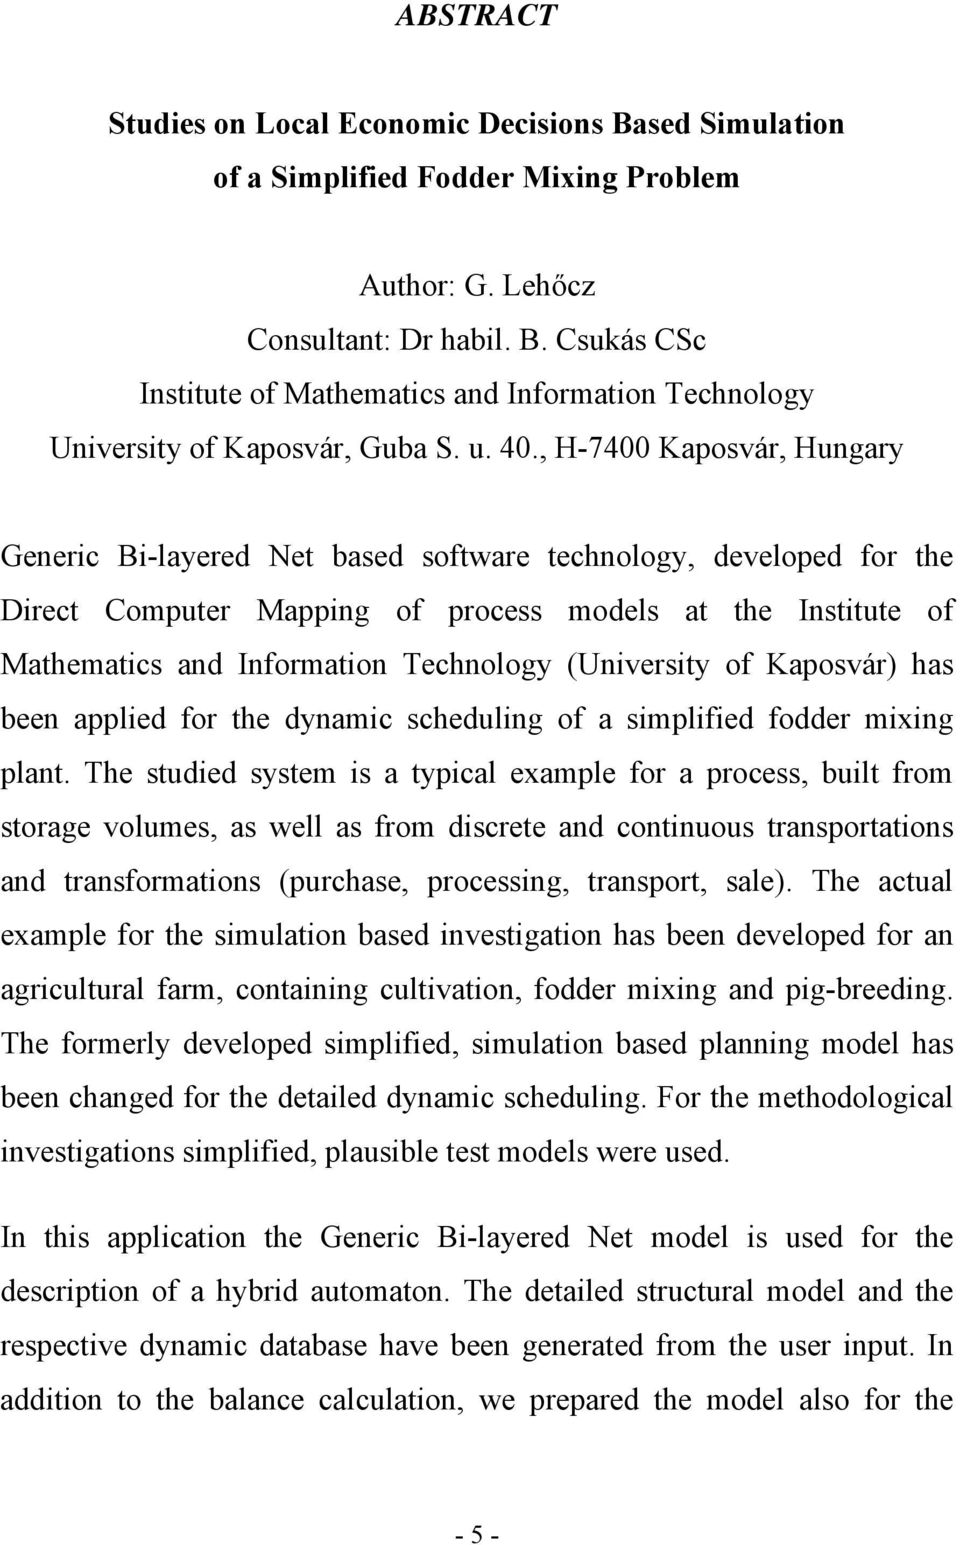 , H-7400 Kaposvár, Hungary Generic Bi-layered Net based software technology, developed for the Direct Computer Mapping of process models at the Institute of Mathematics and Information Technology